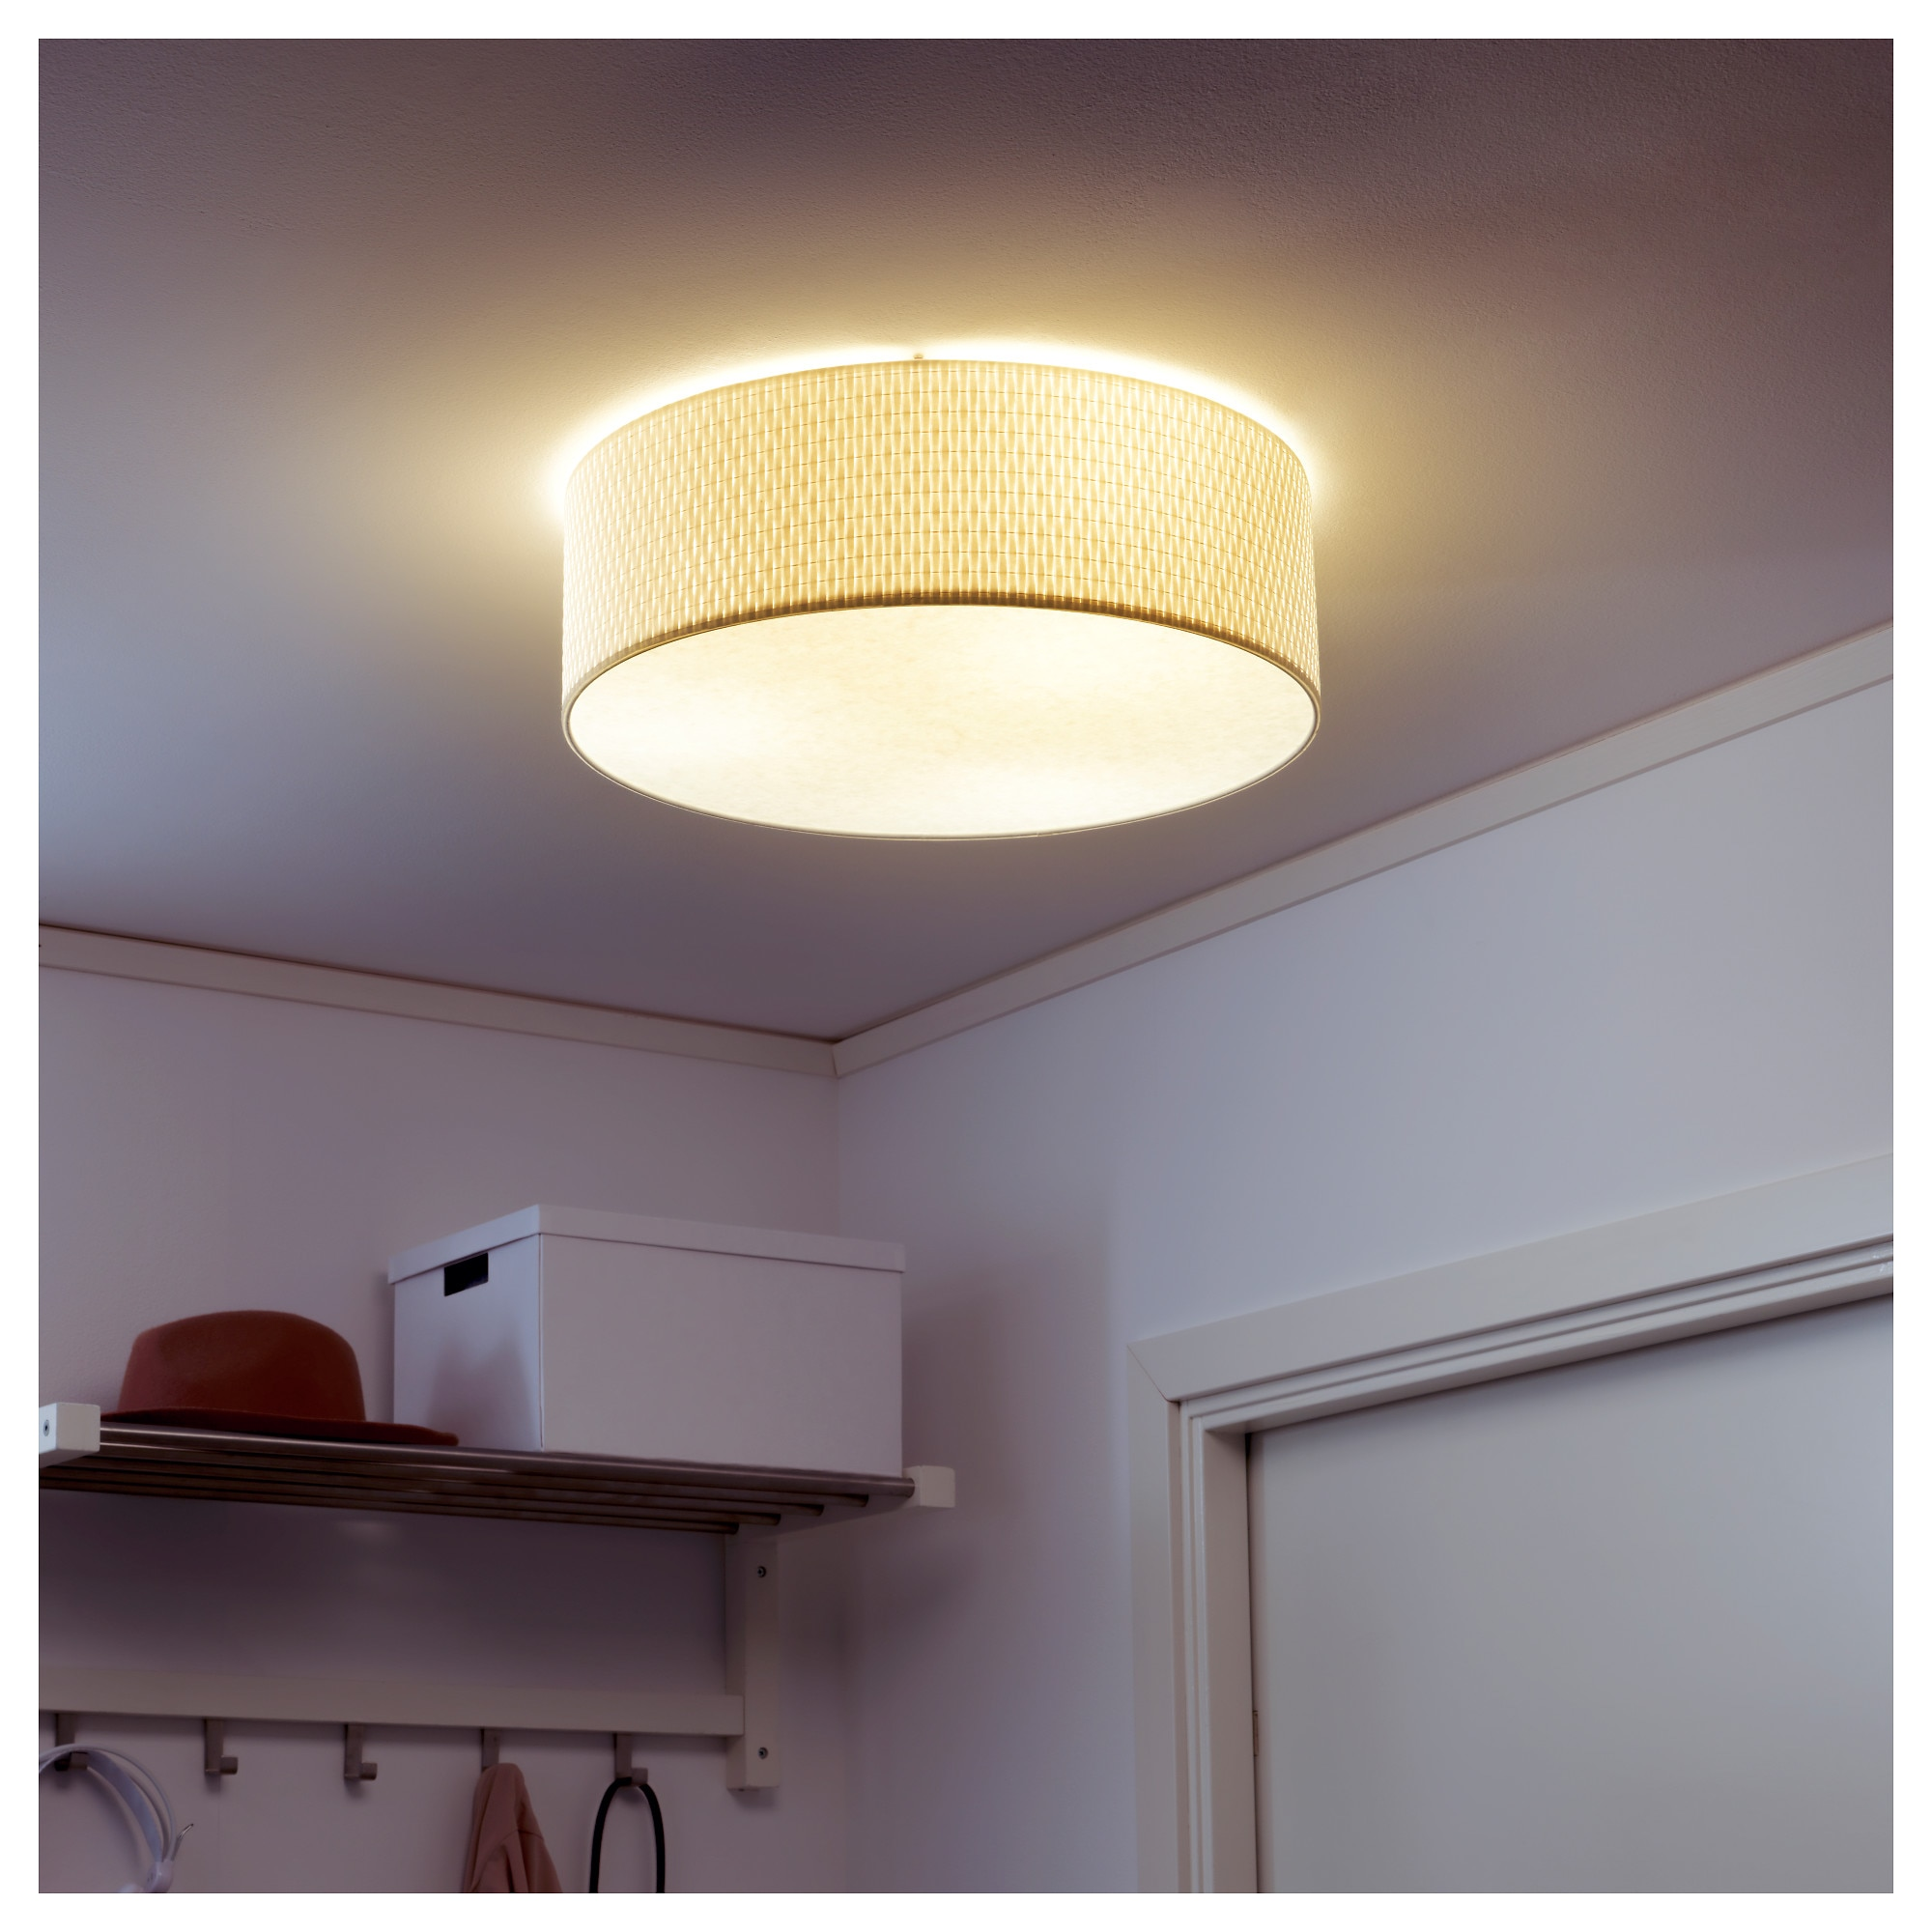 diffused lighting fixtures. diffused lighting fixtures